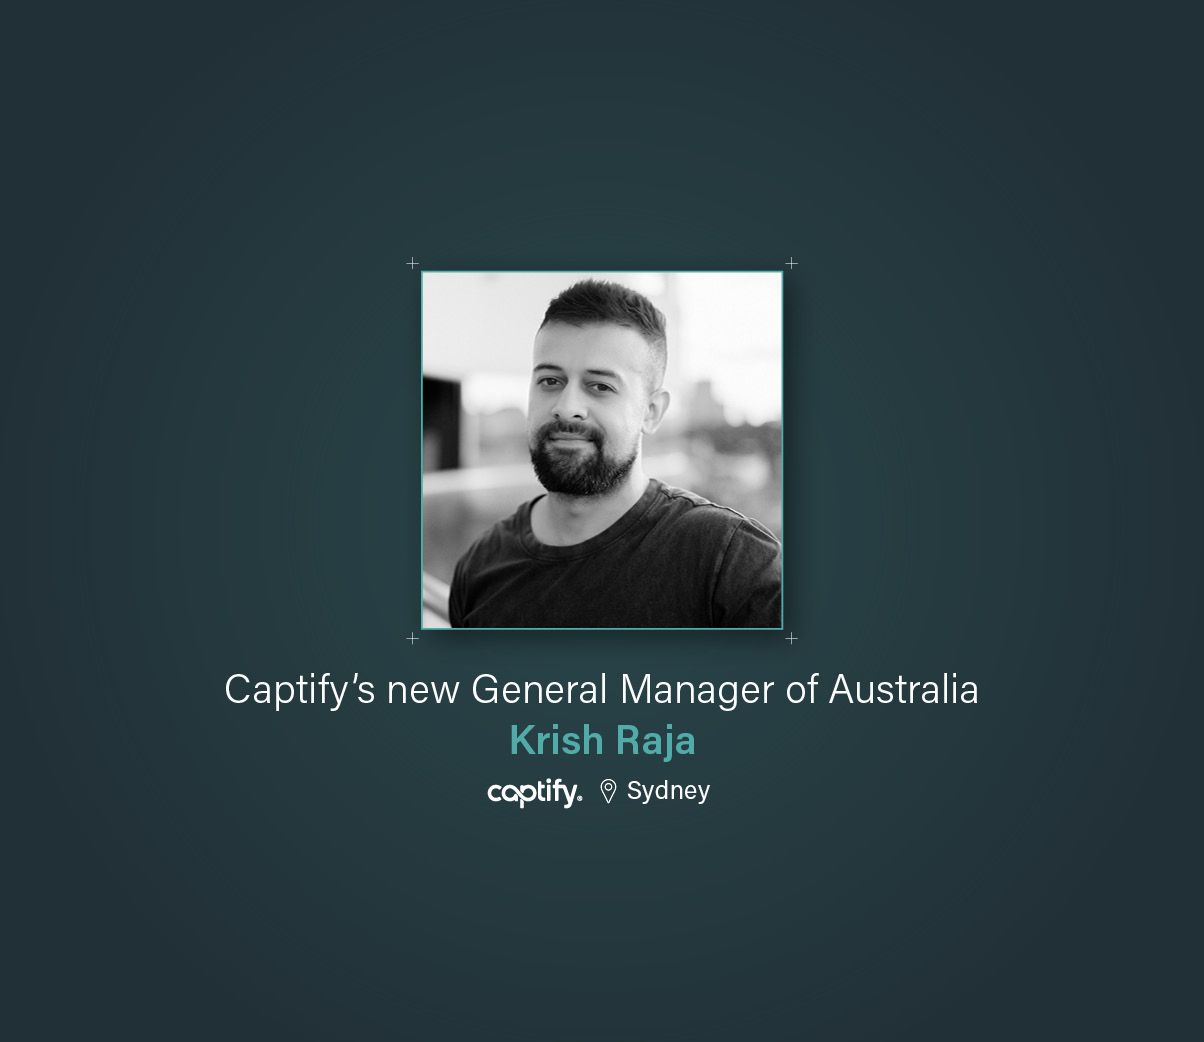 Captify Hires Video and Programmatic Executive Krish Raja as AU General Manager to Make Dynamic and Live Search Data Available to Australian Programmatic Buyers